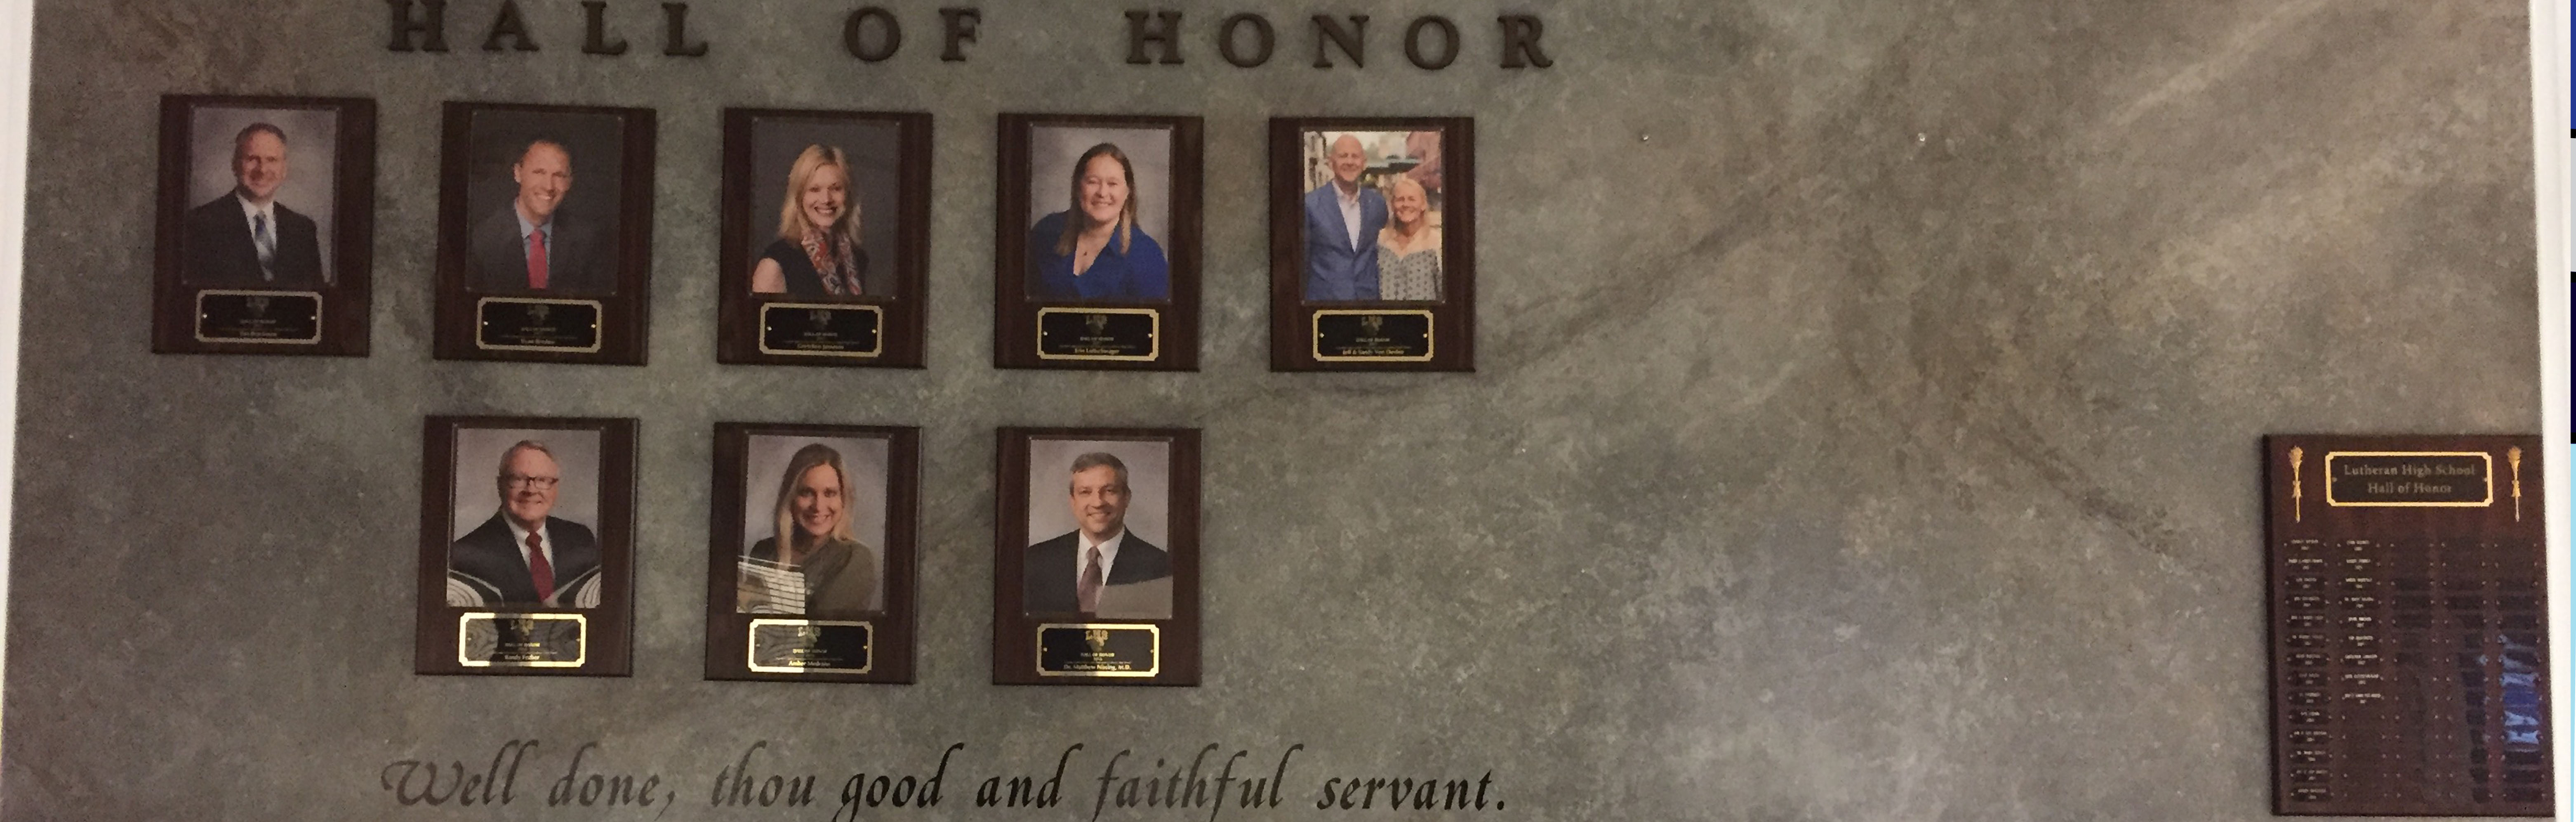 hall of honor banner